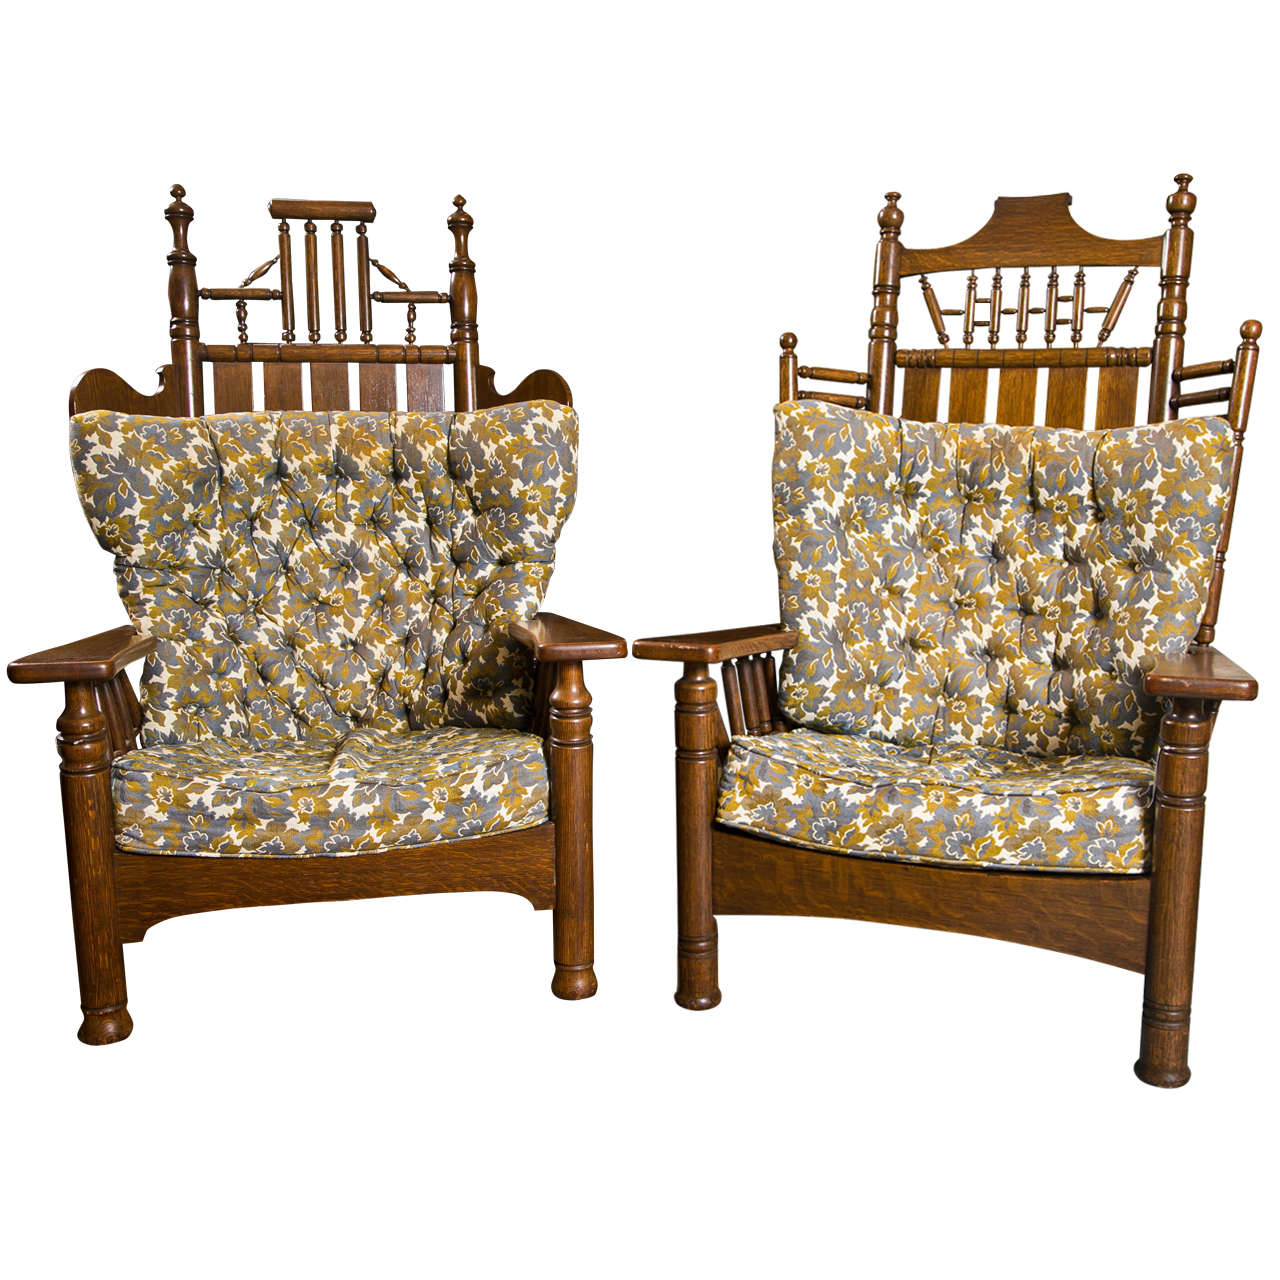 Antique Oak Pair of King and Queen Chairs For Sale - Antique Oak Pair Of King And Queen Chairs For Sale At 1stdibs